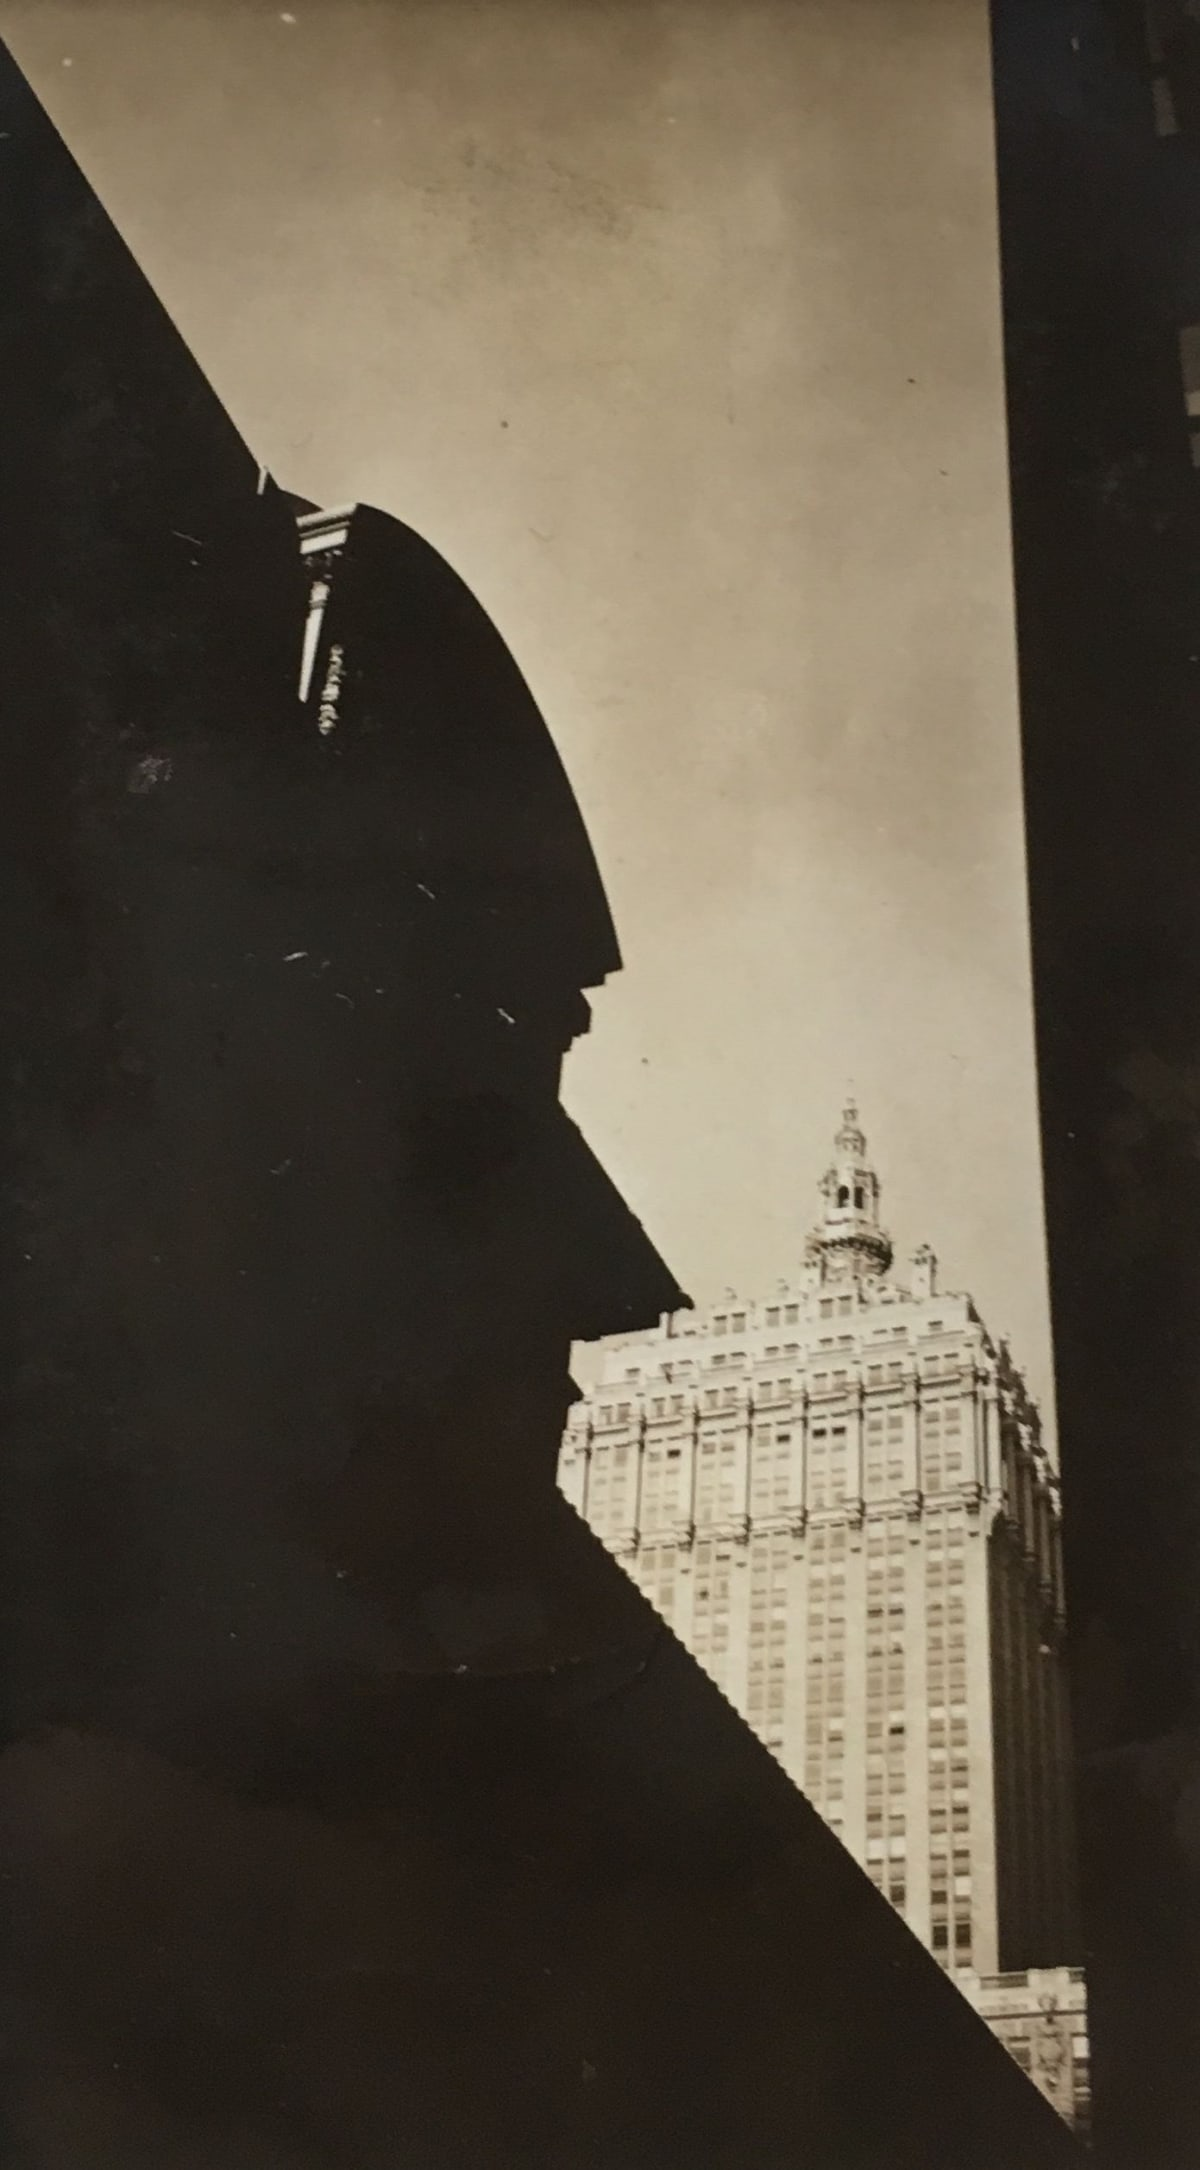 Fred Zinnemann Grand Central Terminal Building, 1932 Vintage gelatin silver print 4 1/4 x 2 3/8 inches